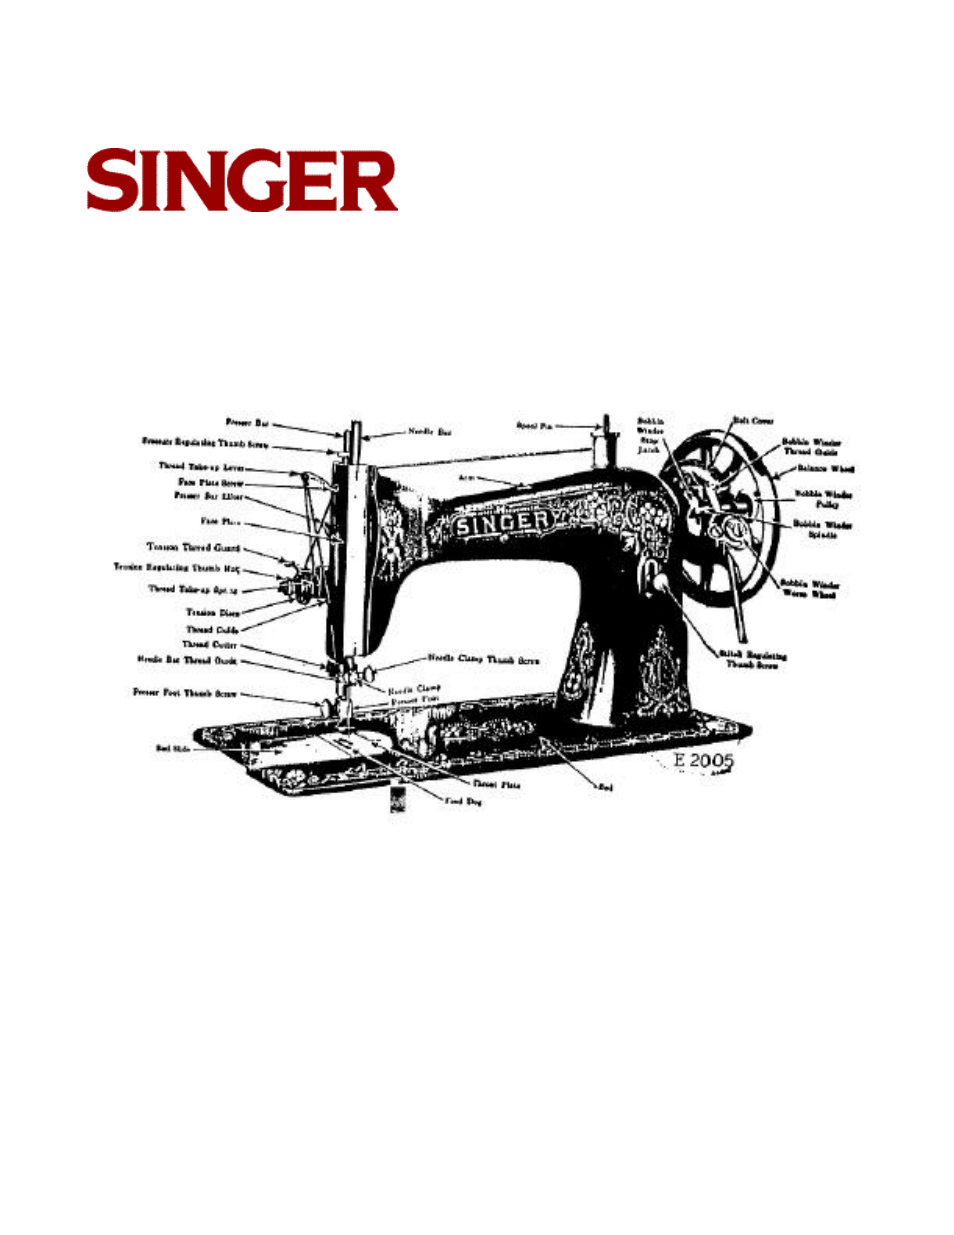 Singer Sewing Machine Parts Manual Guide